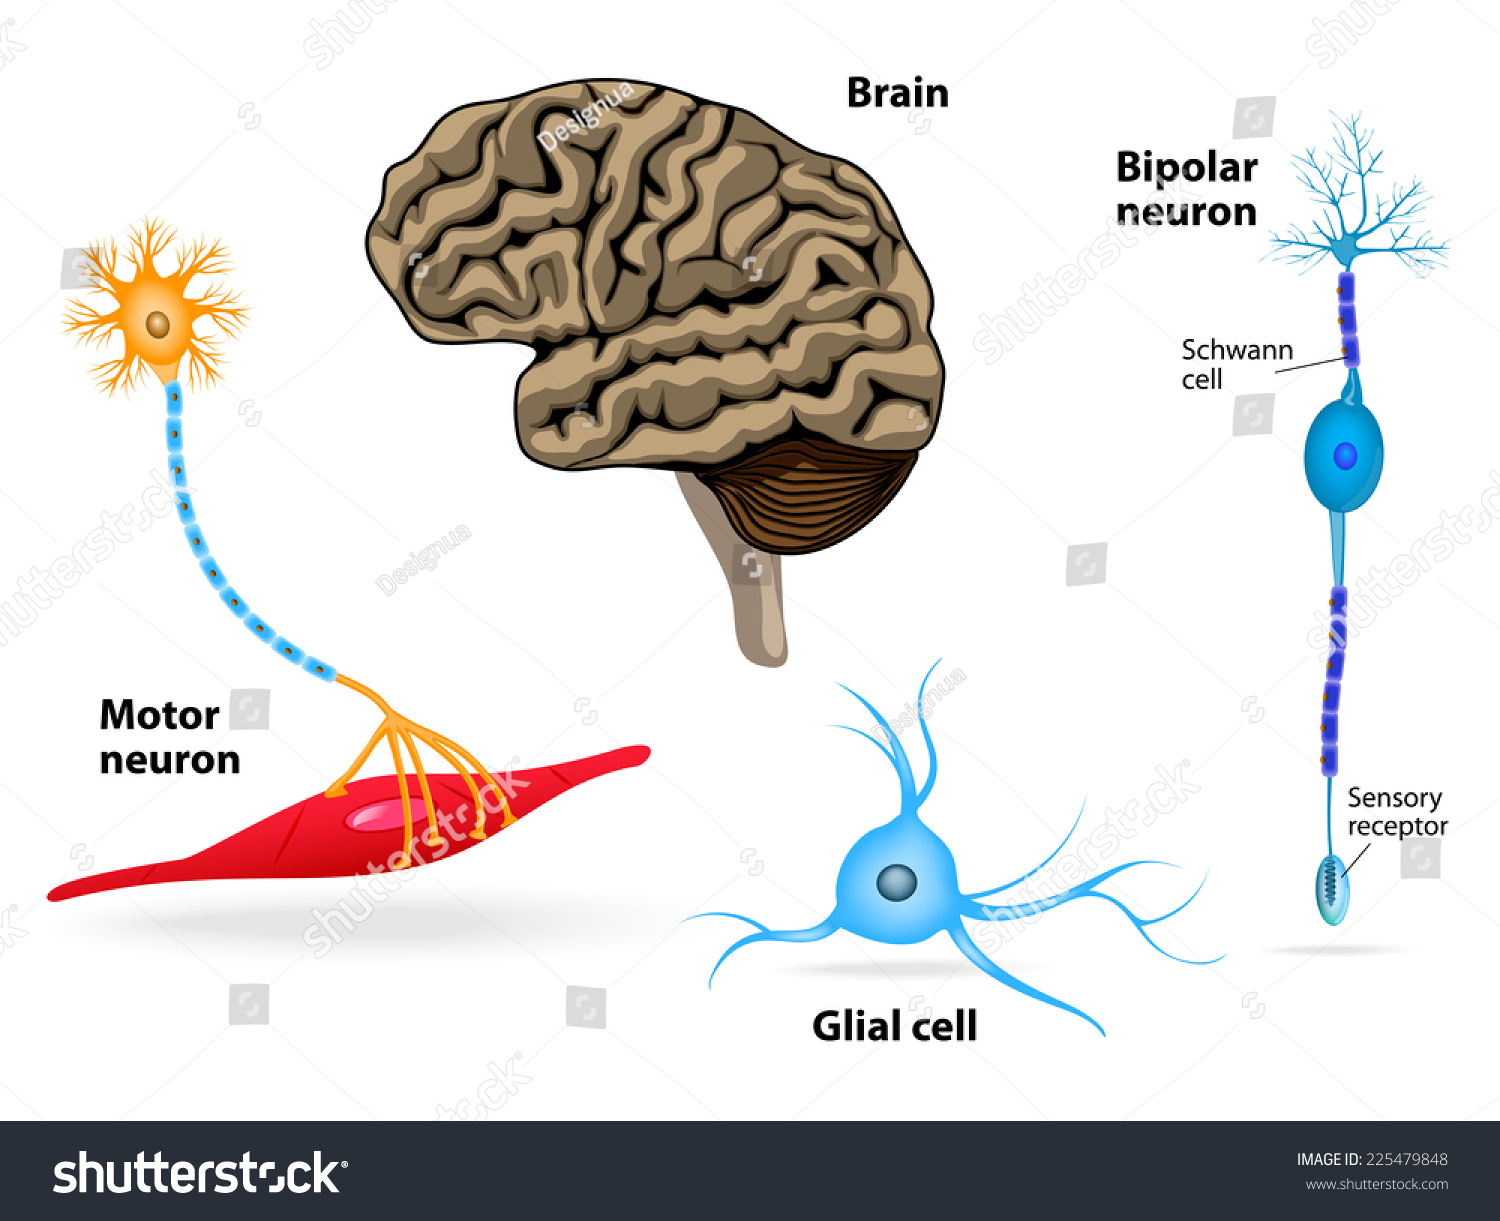 Human Anatomy Endocrine System Pituitary Gland Stock Illustration ...